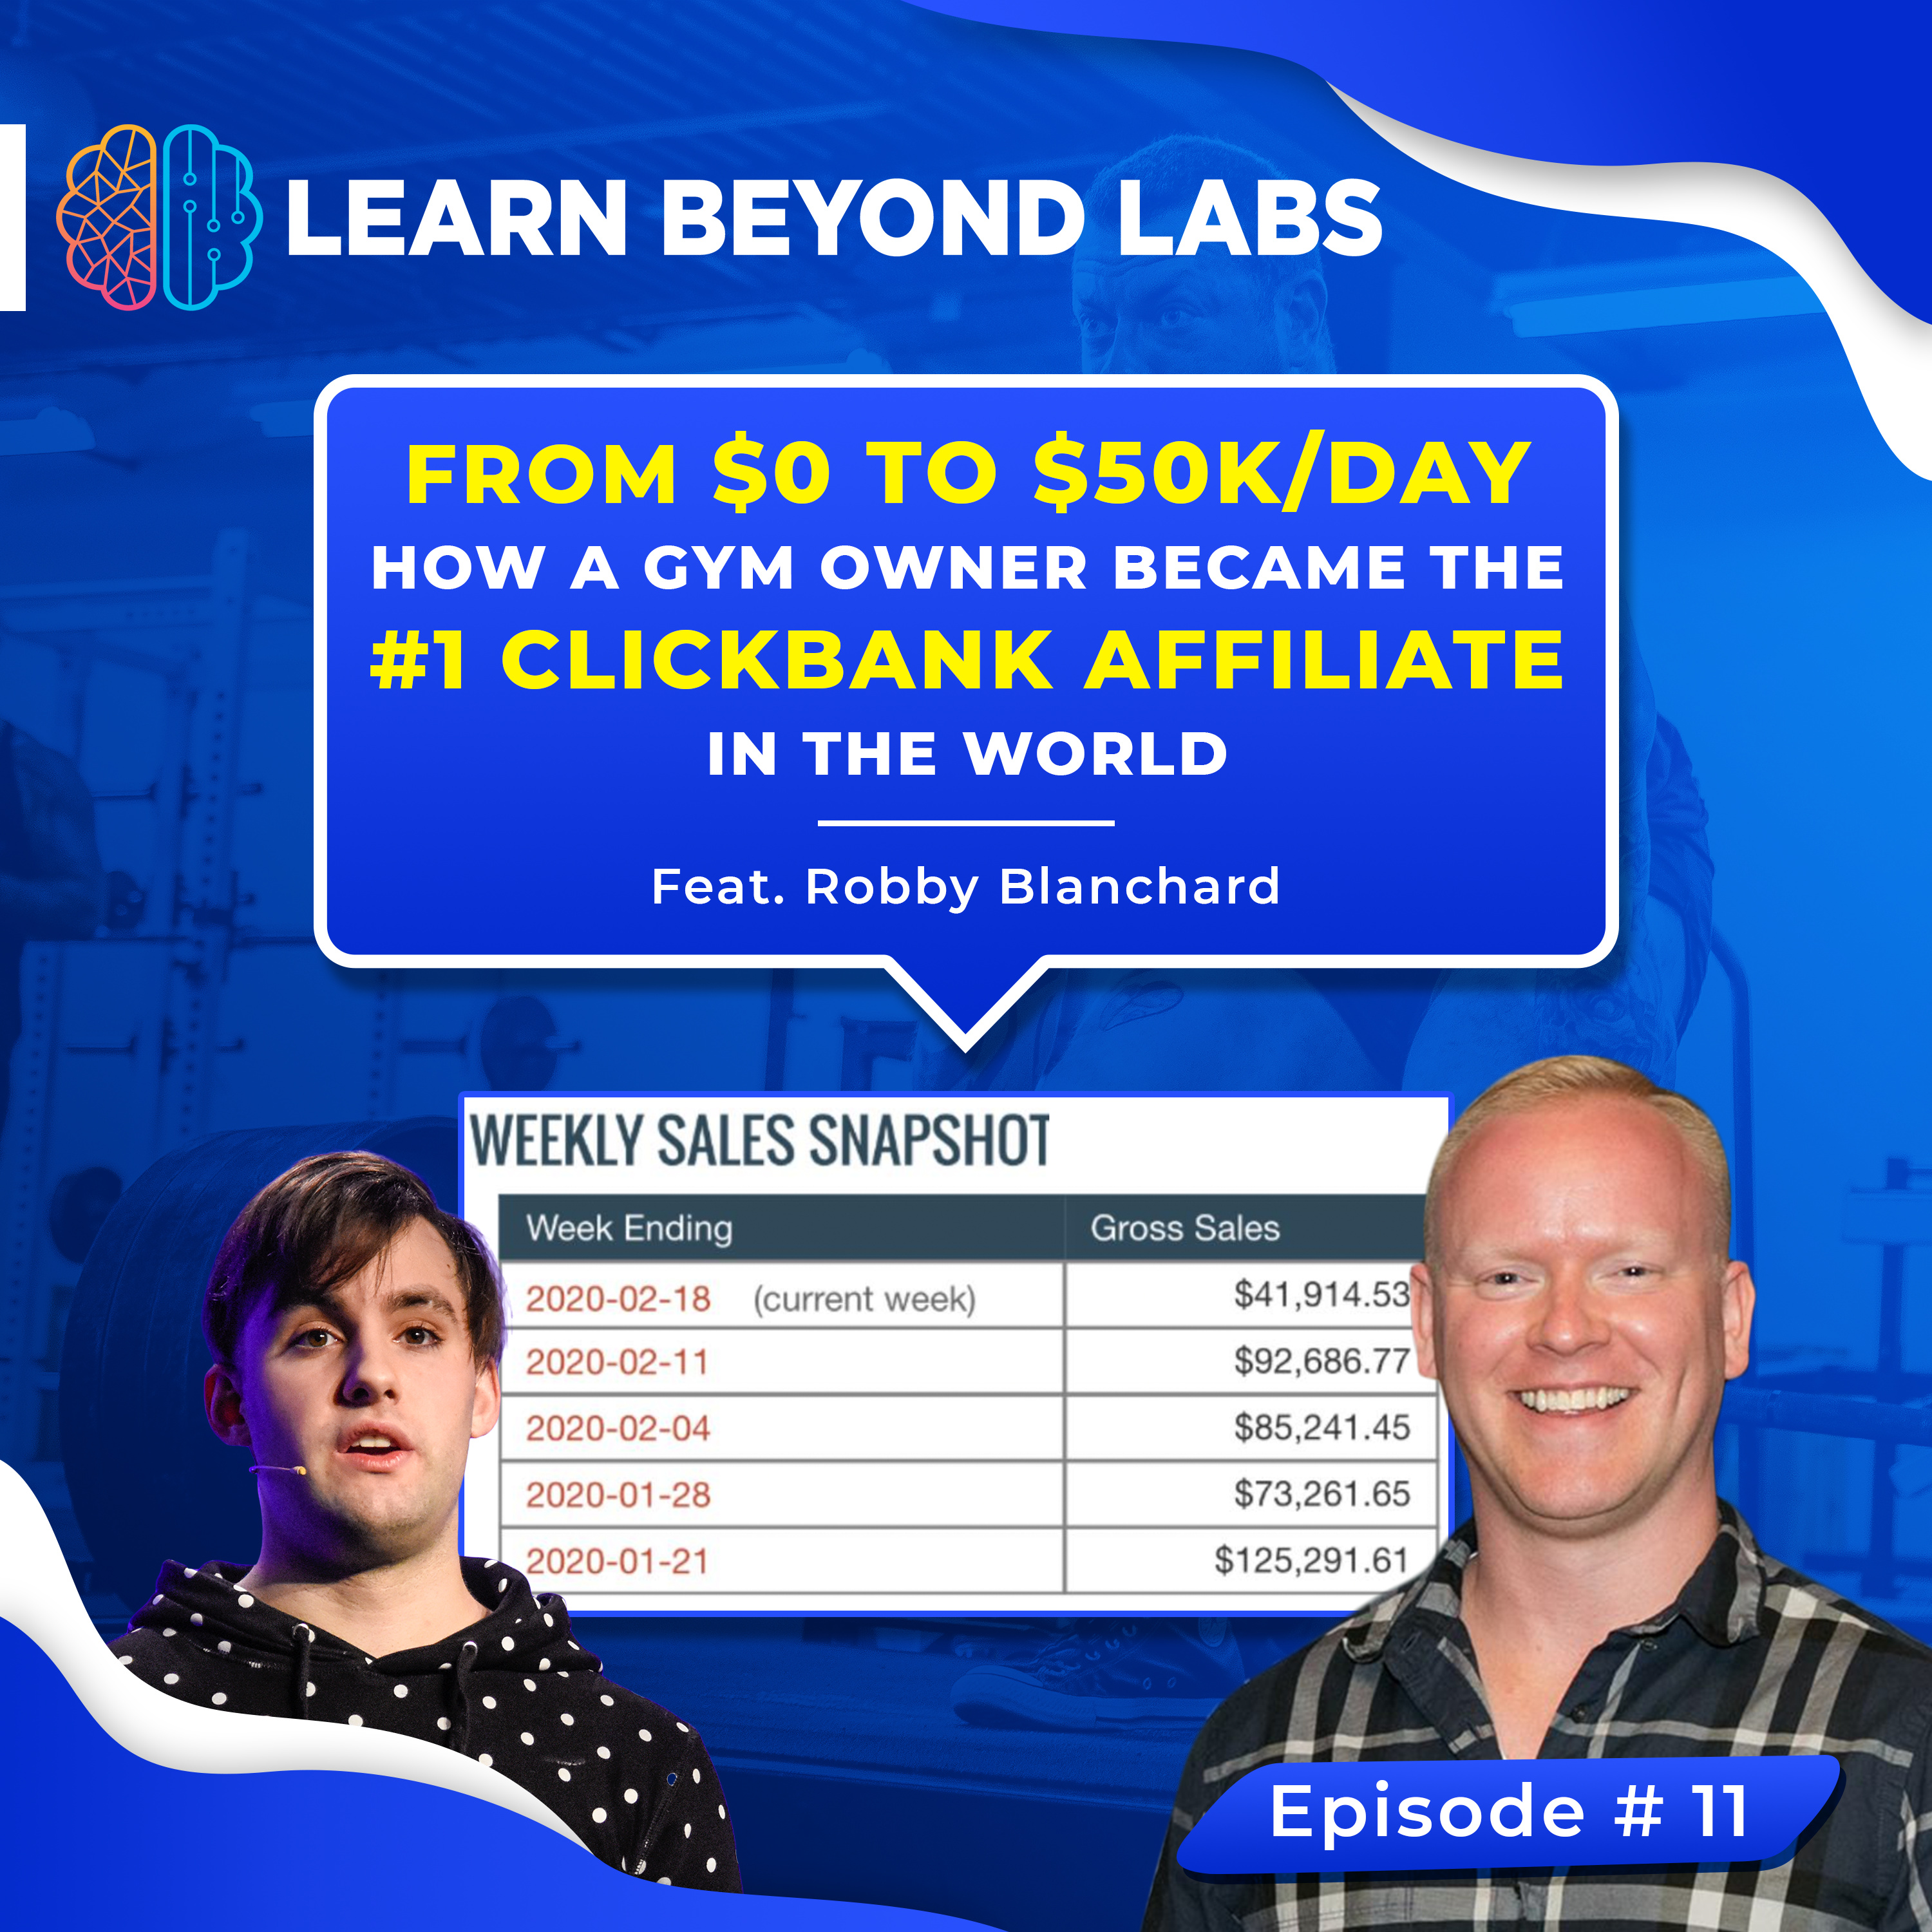 From $0 To $50K/Day: How A Gym Owner Became The #1 ClickBank Affiliate In The World (Feat. Robby Blanchard)